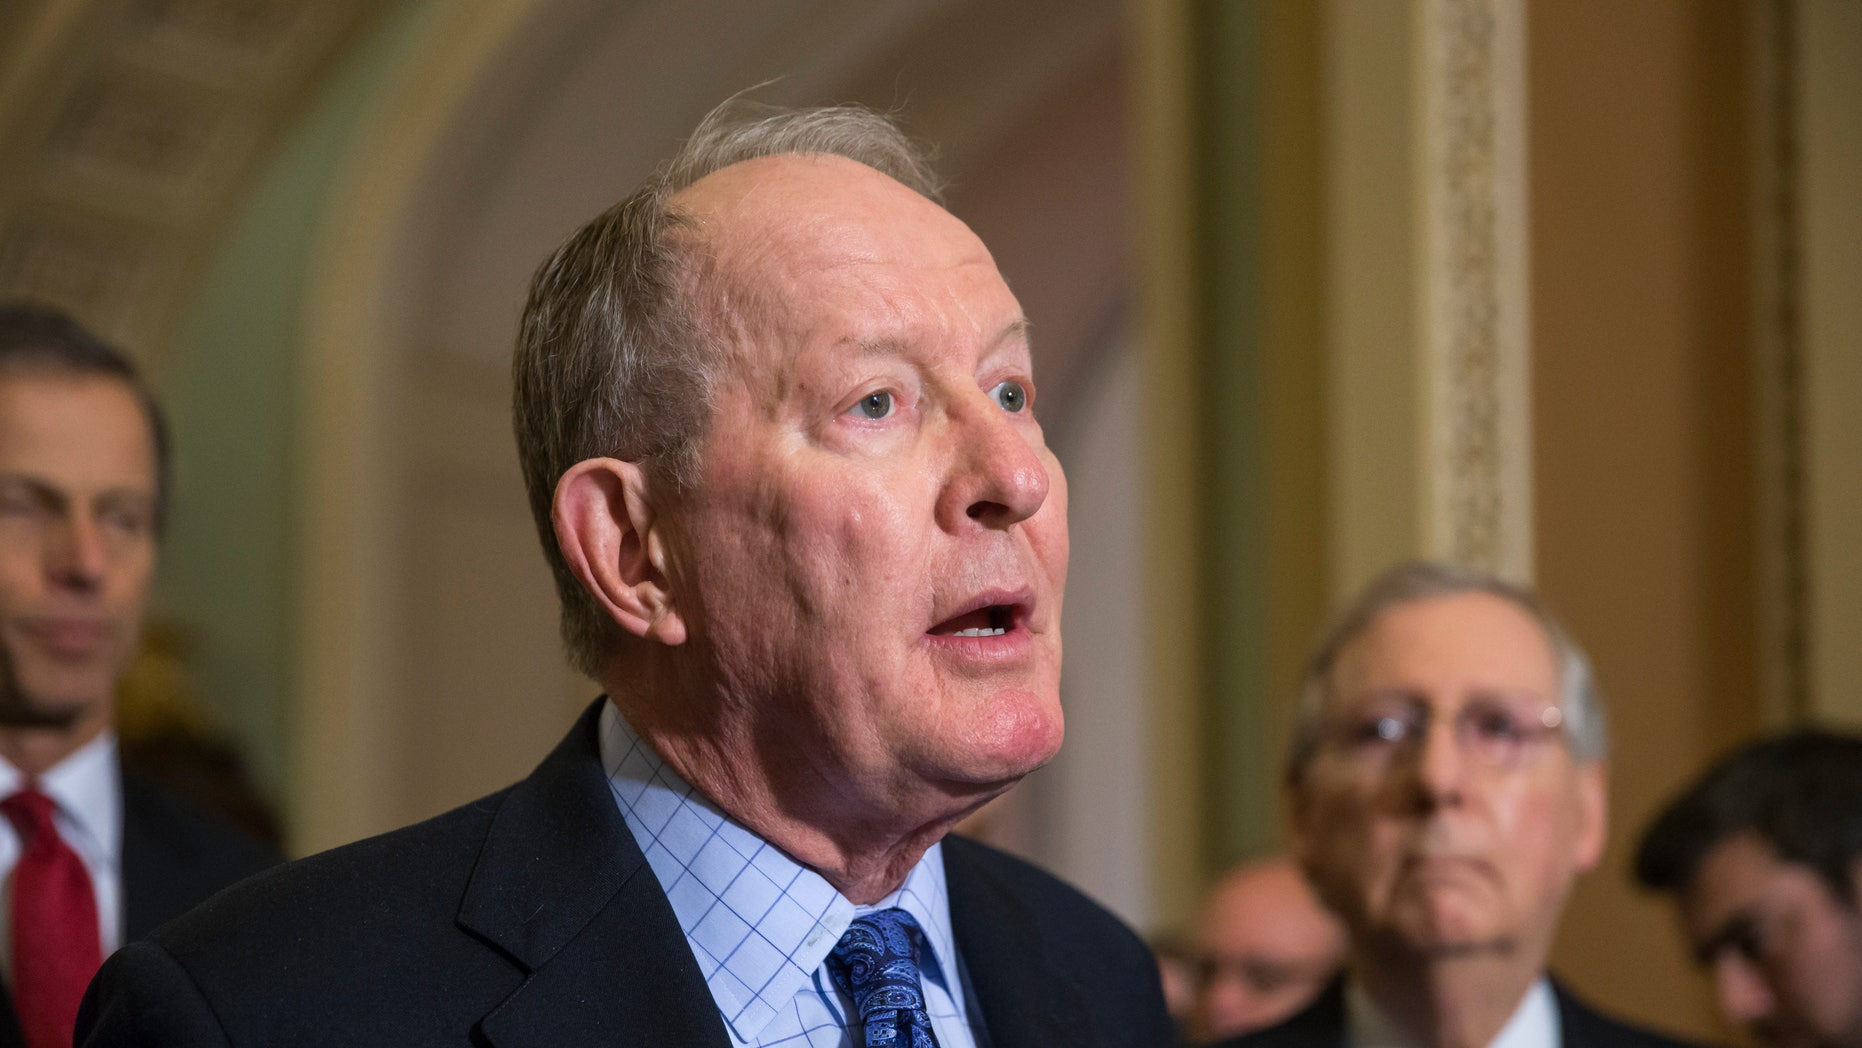 Dec. 8, 2015: Sen. Lamar Alexander, R-Tenn., chairman of the Senate Health, Education, Labor, and Pensions Committee, is joined by Senate Majority Leader Mitch McConnell, R-Ky., right, as he speaks to reporters after the Senate voted overwhelmingly to end debate on the makeover of the widely criticized No Child Left Behind Act, setting up a final vote.